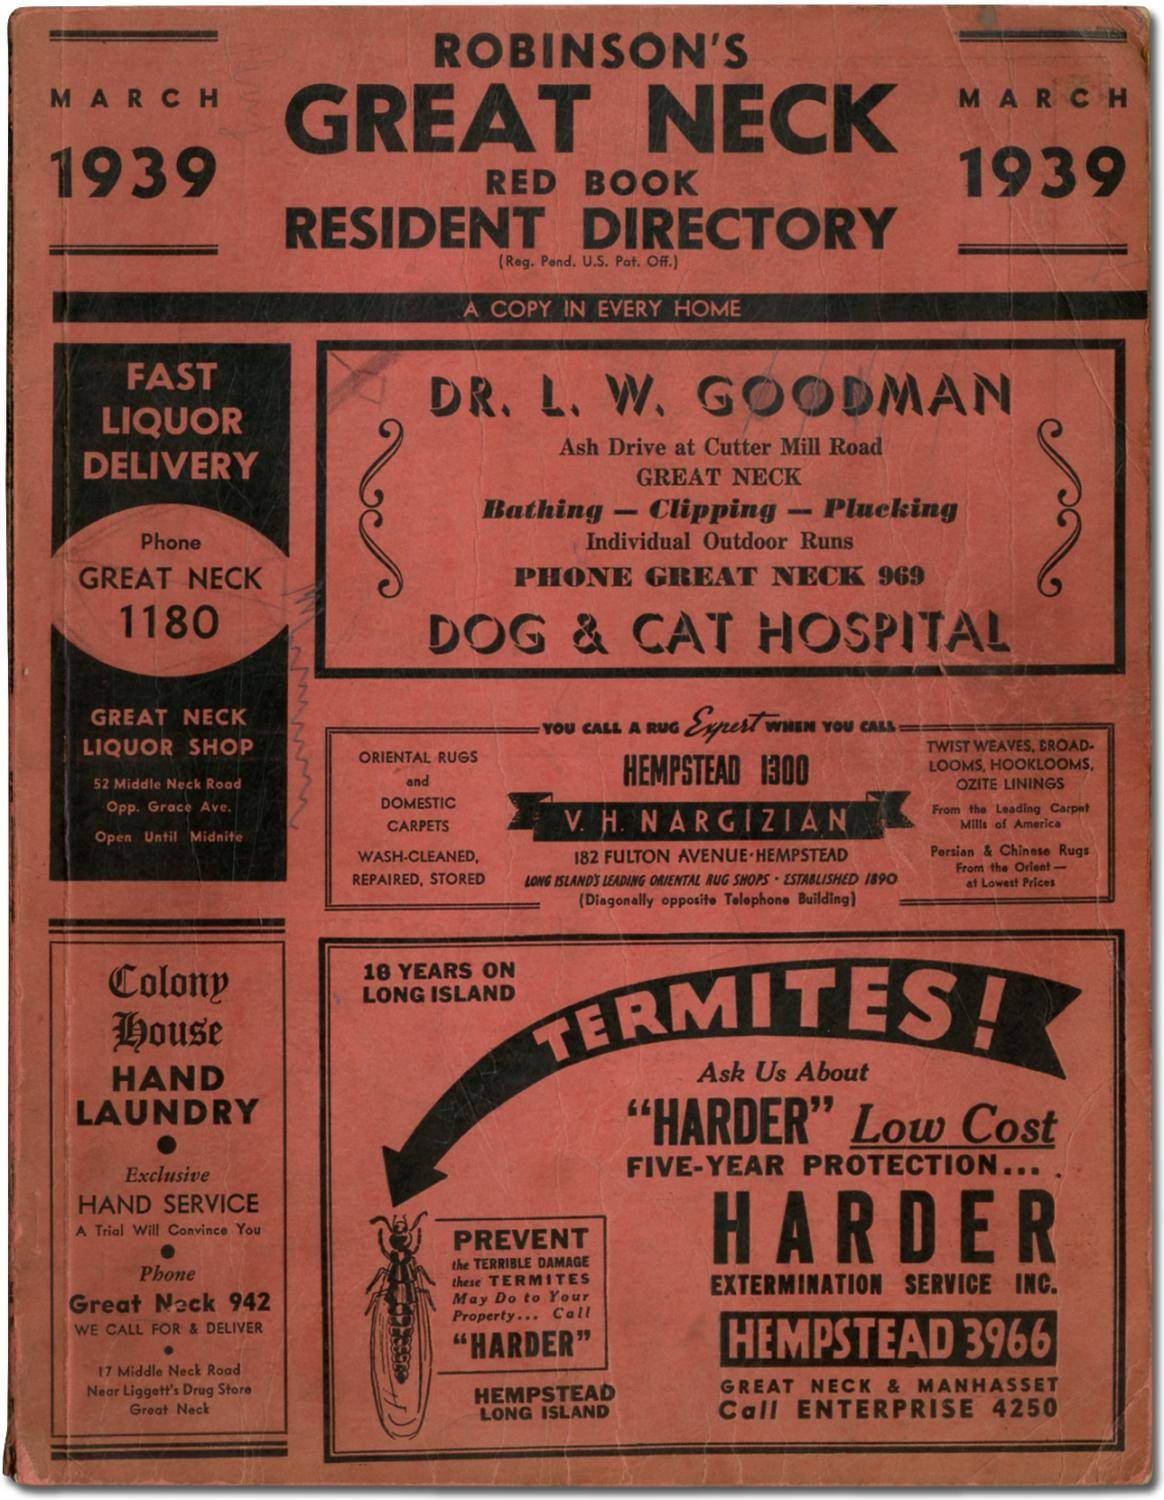 [Business and Phone Directory]: Robinson's Great Neck Red Book Resident Directory. March 1939   [Very Good] [Softcover]